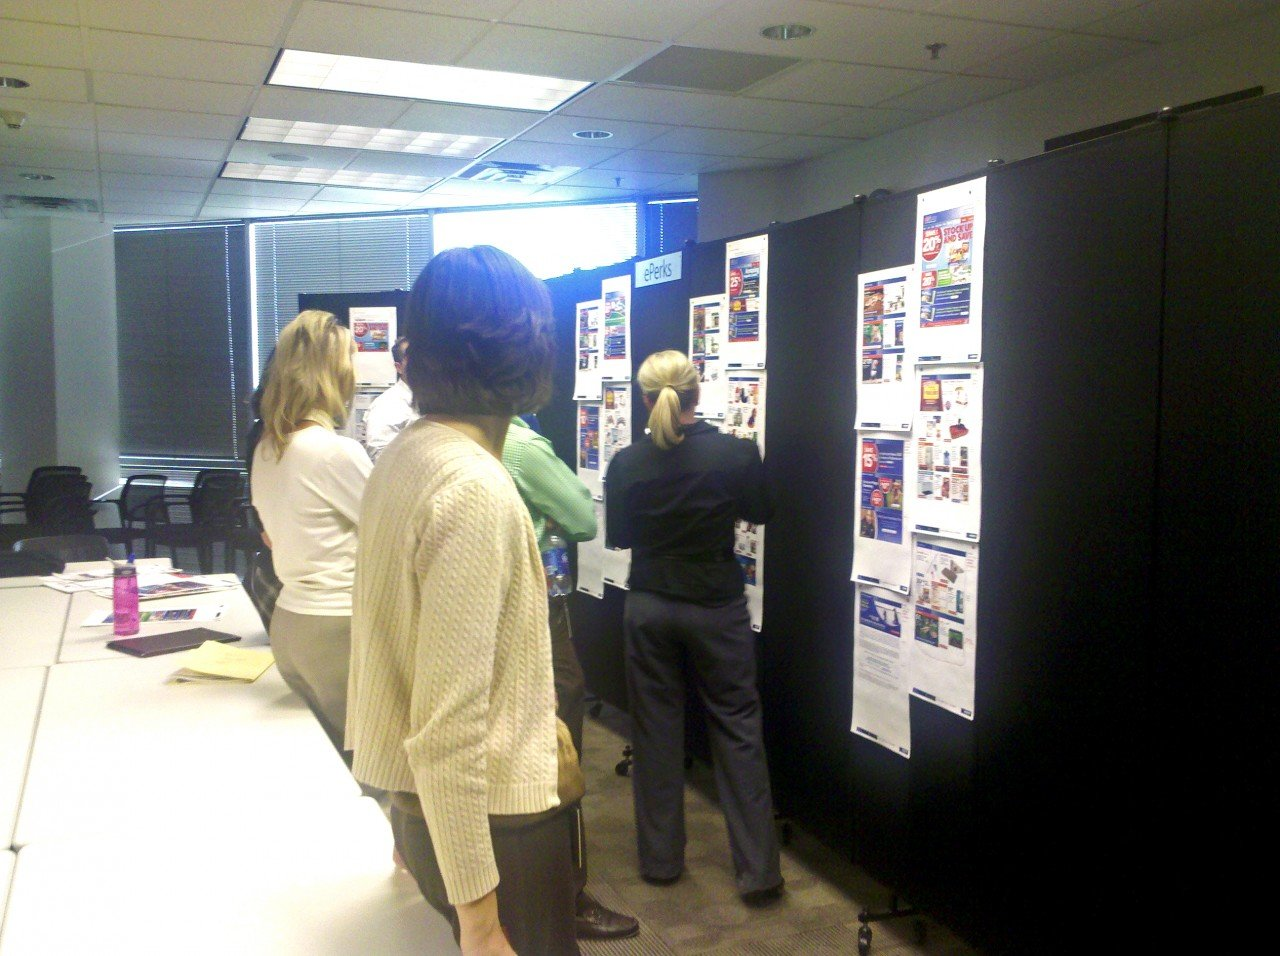 A small group of employees review several storyboard layouts tacked to a black Screenflex Room Divider.